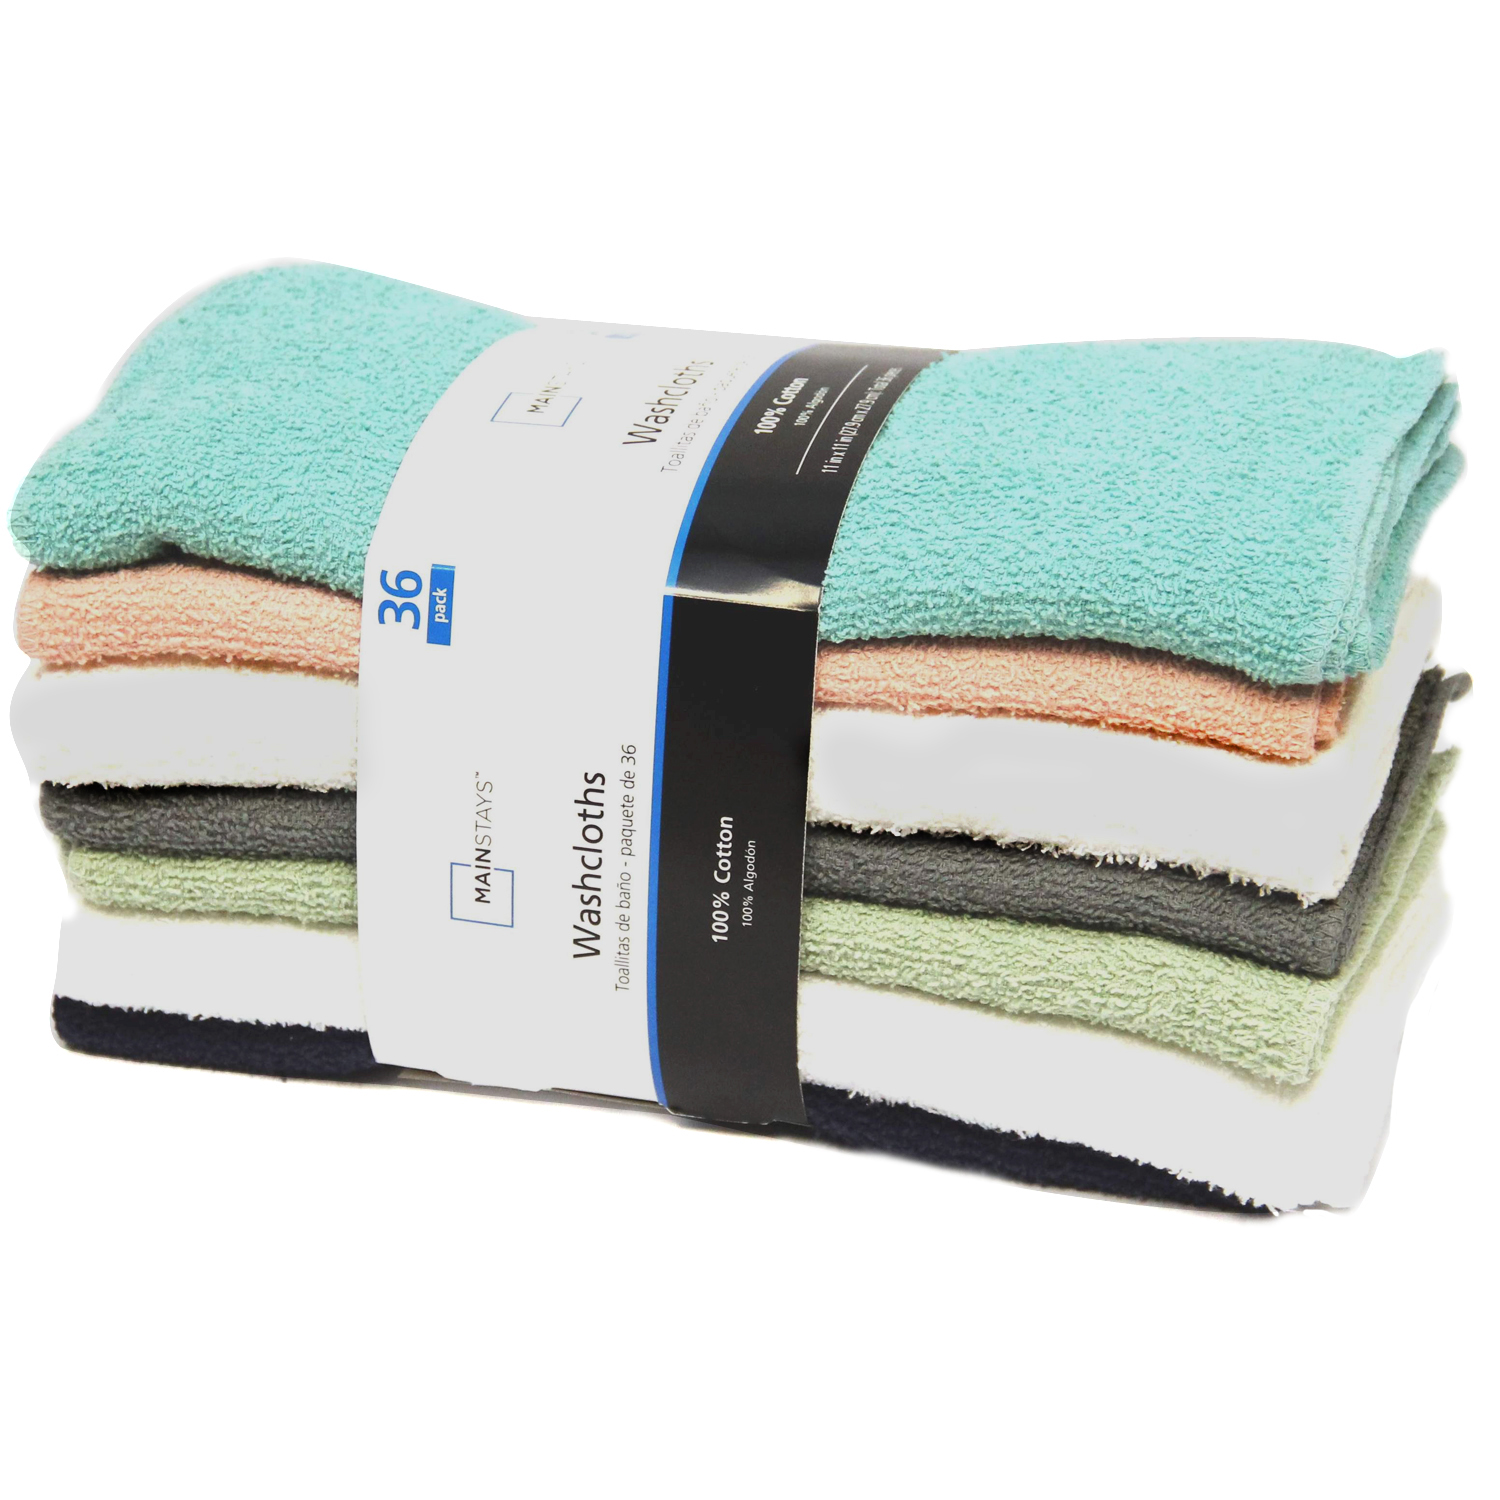 MAINSTAYS 36PK WASHCLOTH COLLECTION